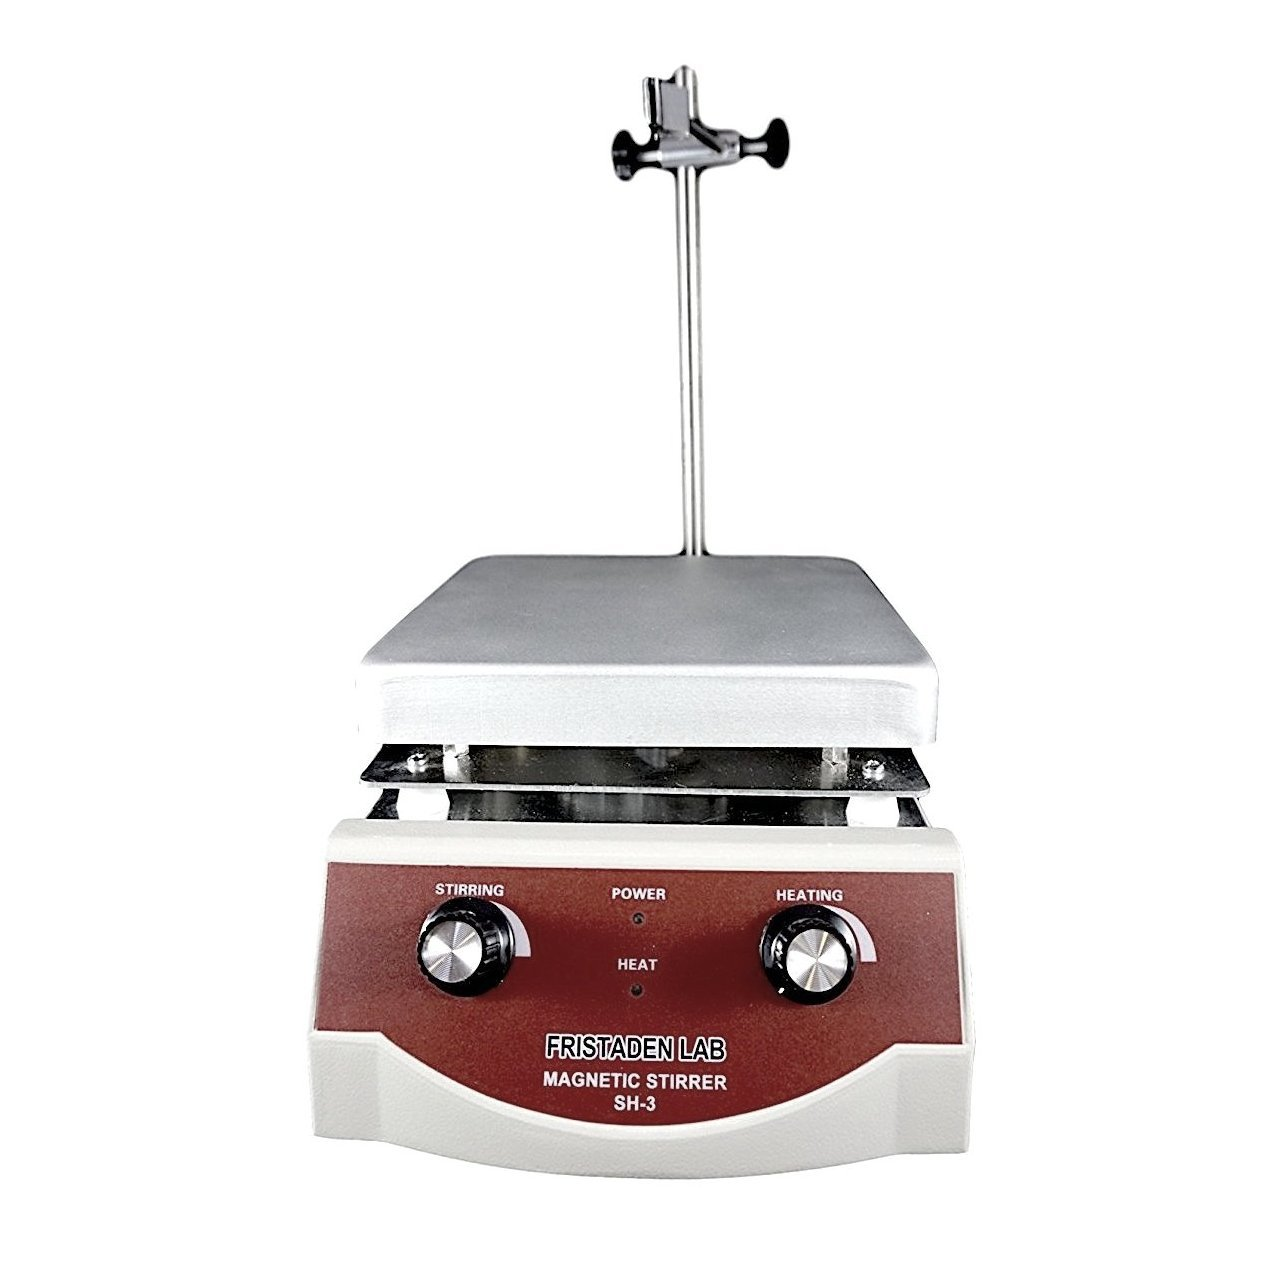 Fristaden Lab SH-3 Magnetic Stirrer Hot Plate, Stir Plate, Magnetic Mixer Dual Controls for Heating and Stirring 3,000mL, 100-1600rpm, 500W, 350°C by Fristaden Lab (Image #2)